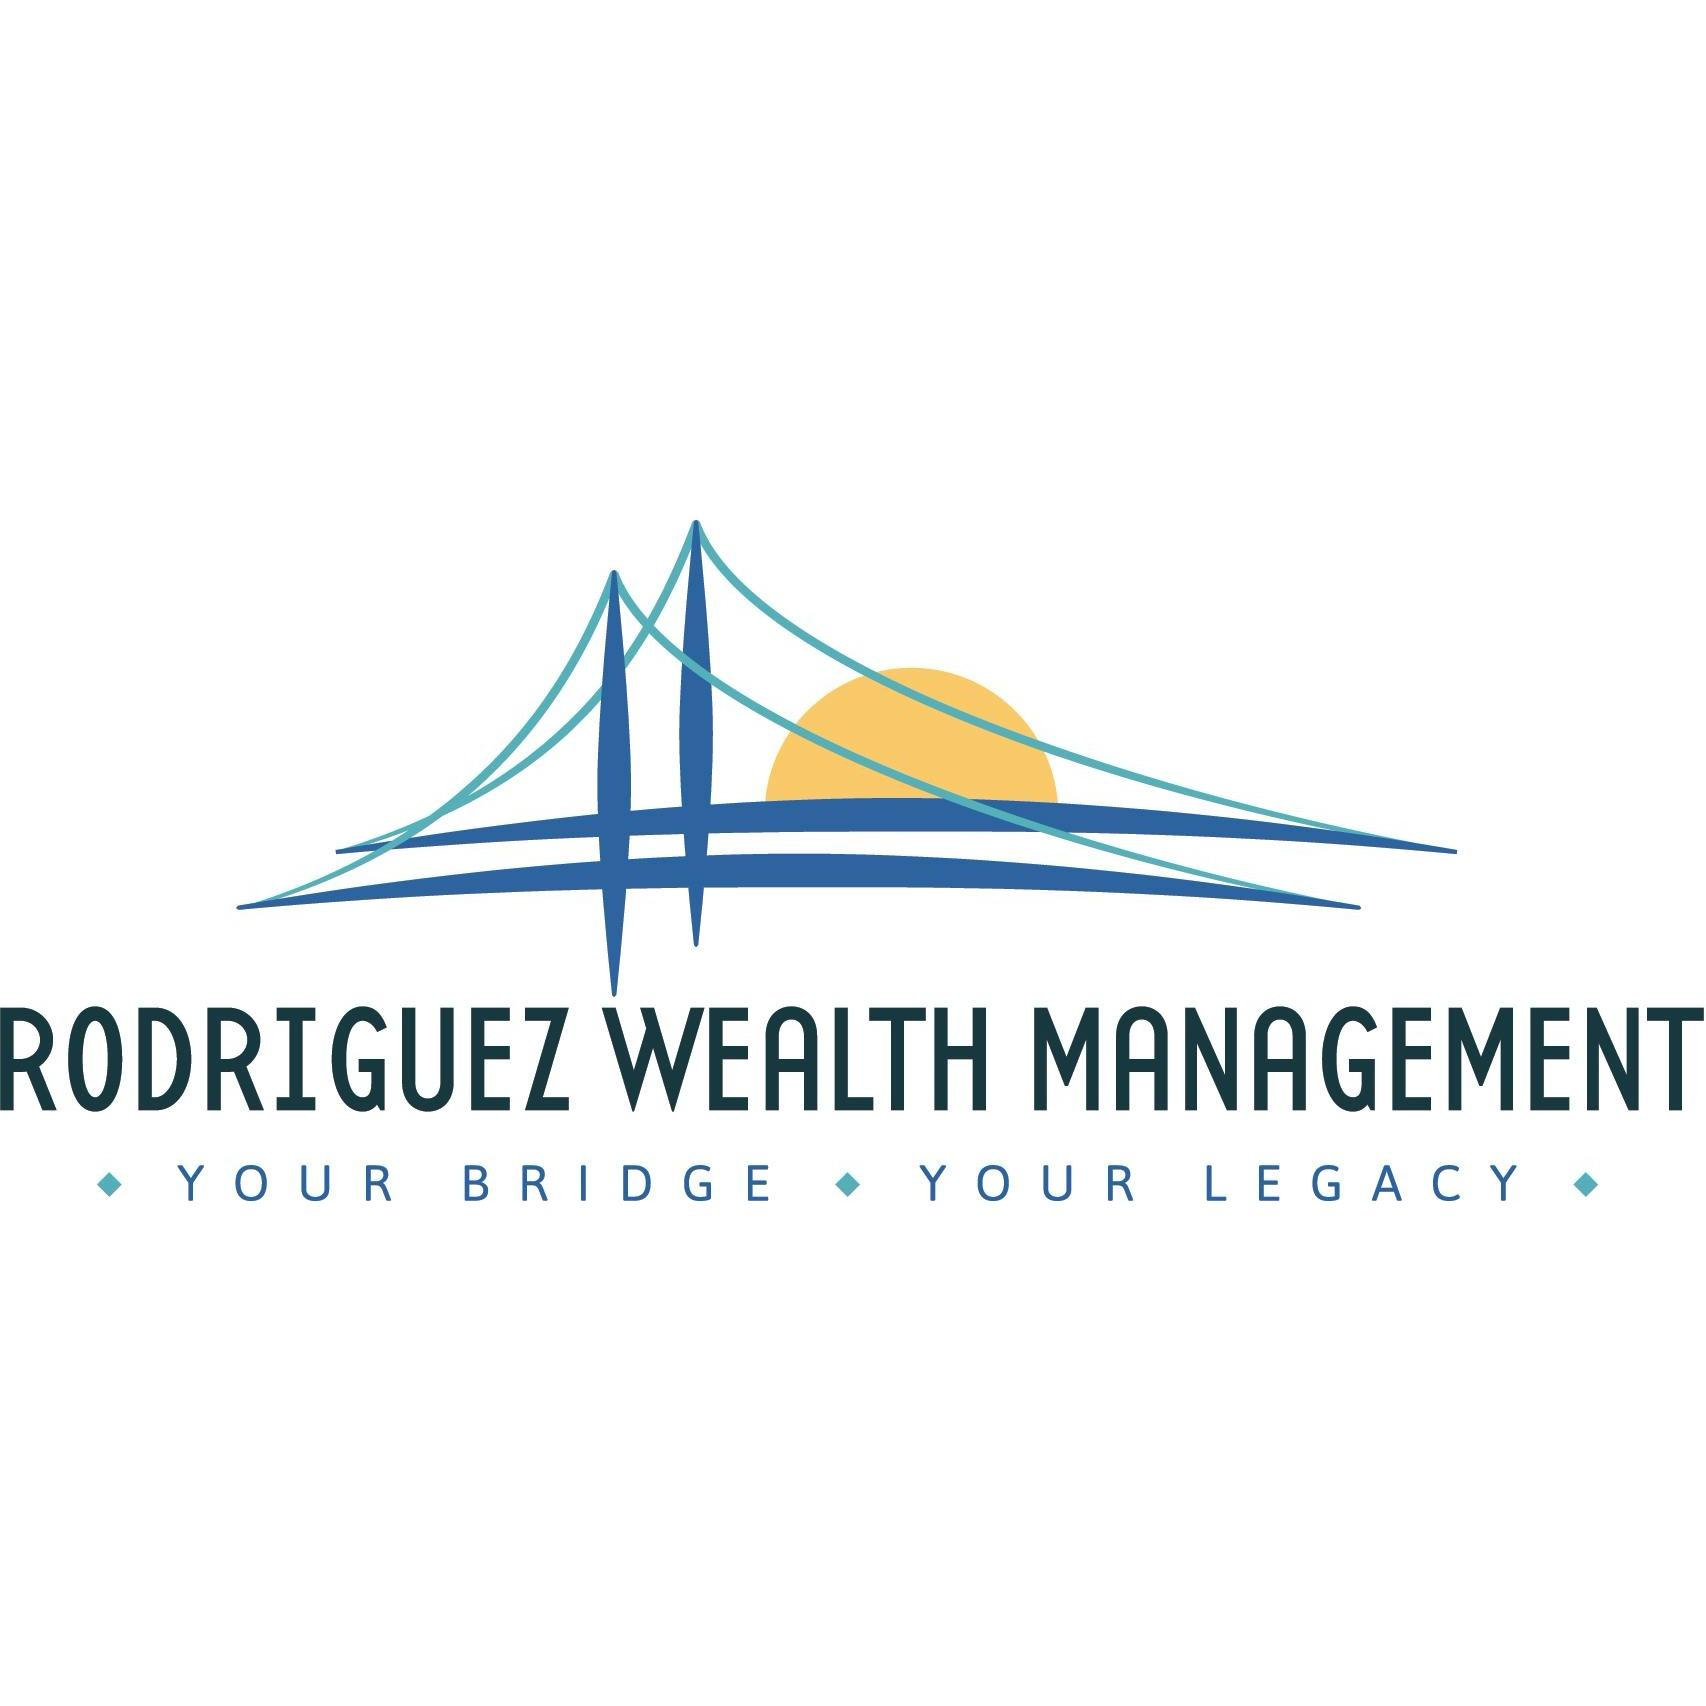 Rodriguez Wealth Management